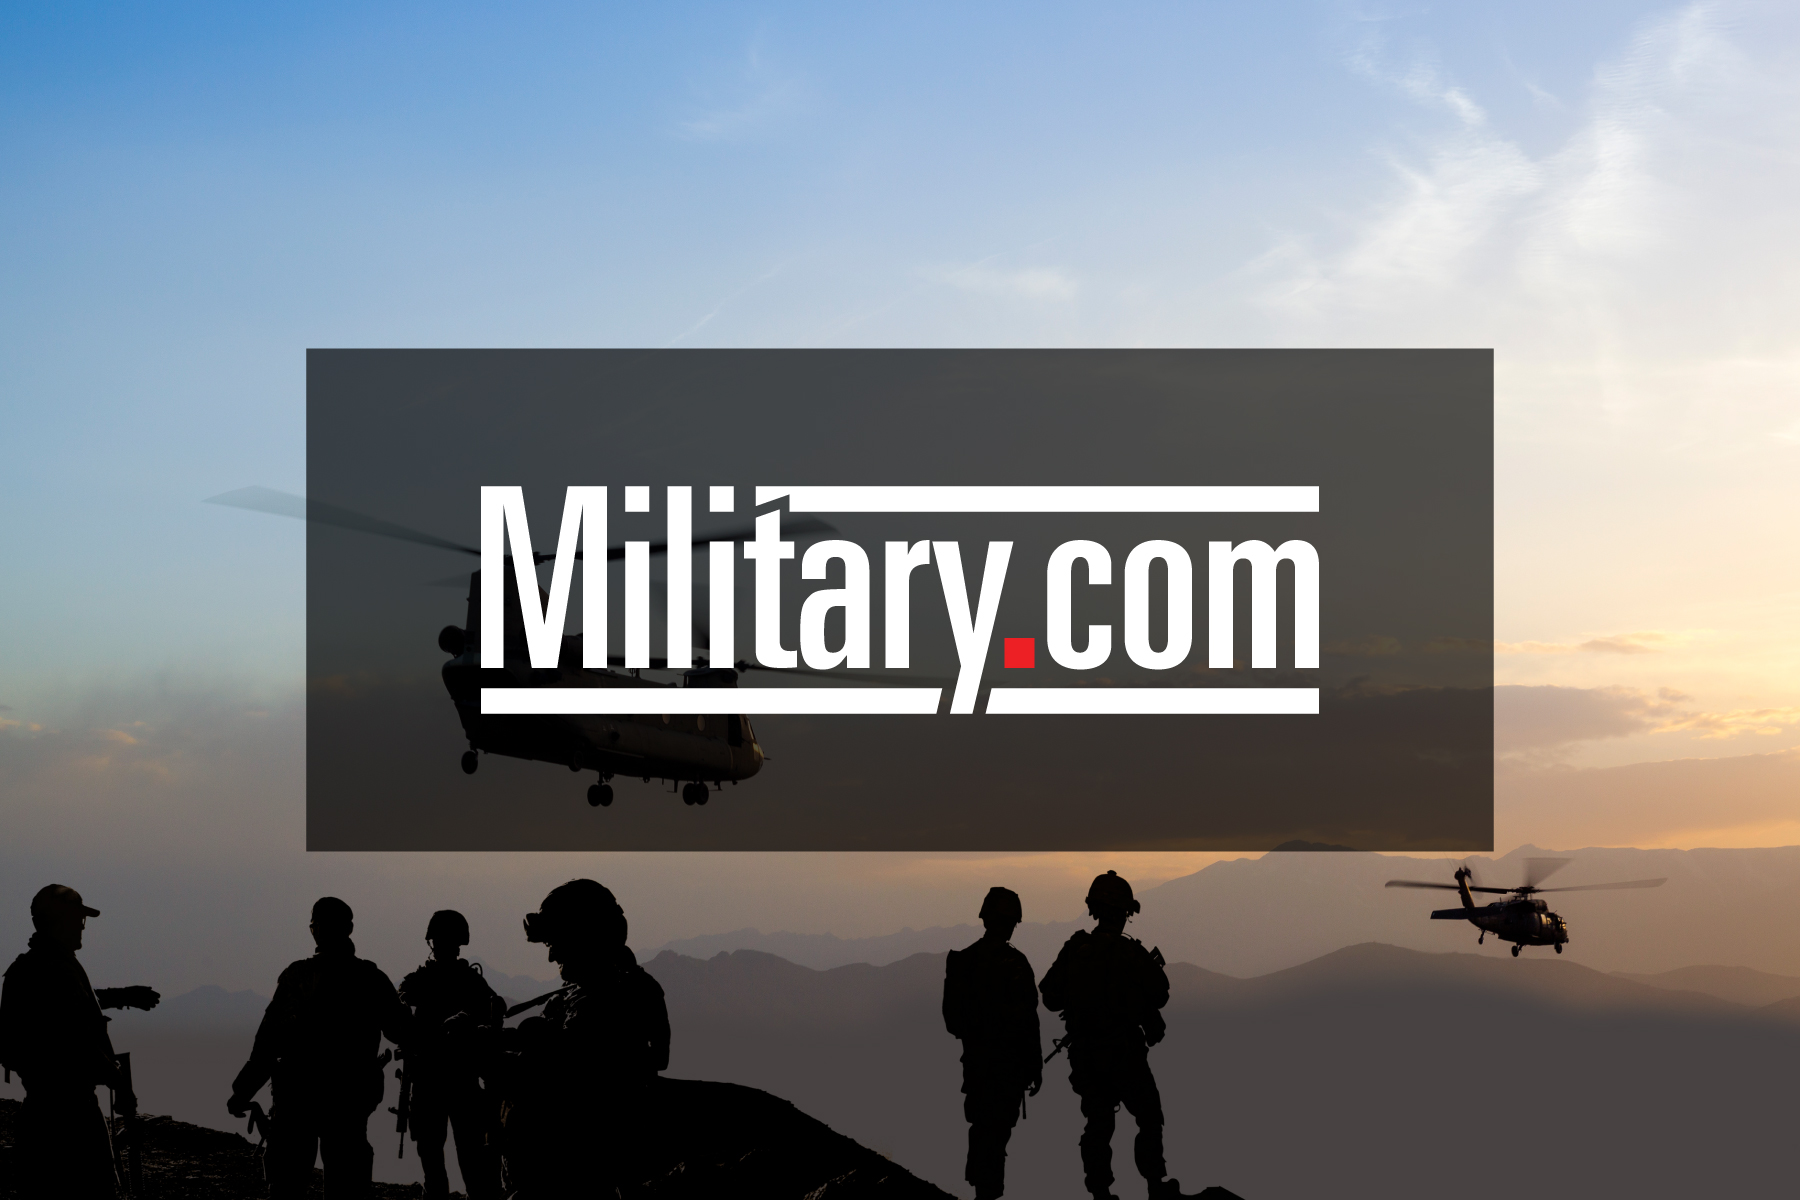 dfas personal statement of military compensation